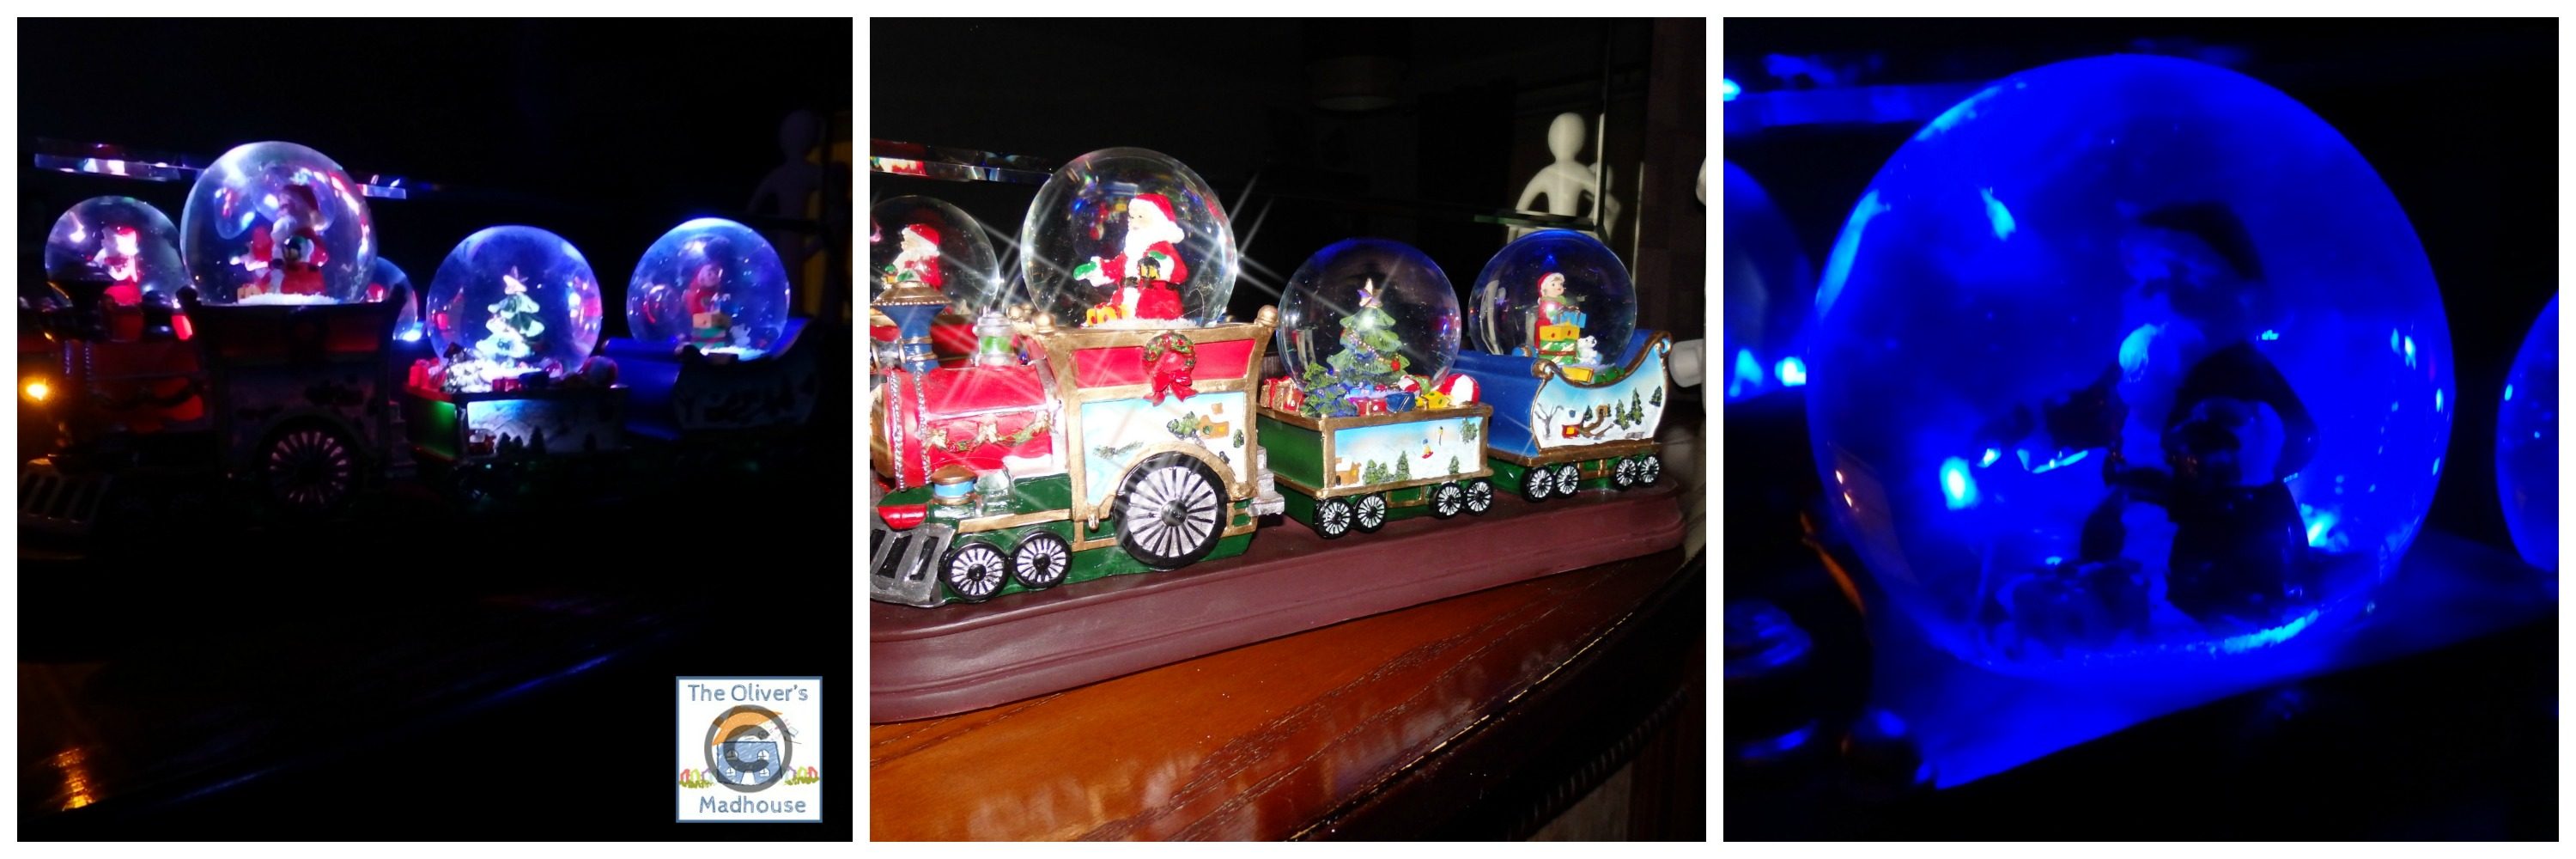 Review & Giveaway - Love Christmas Ltd Snow Globe (Giveaway Now Closed) The Oliver\\\'s Madhouse